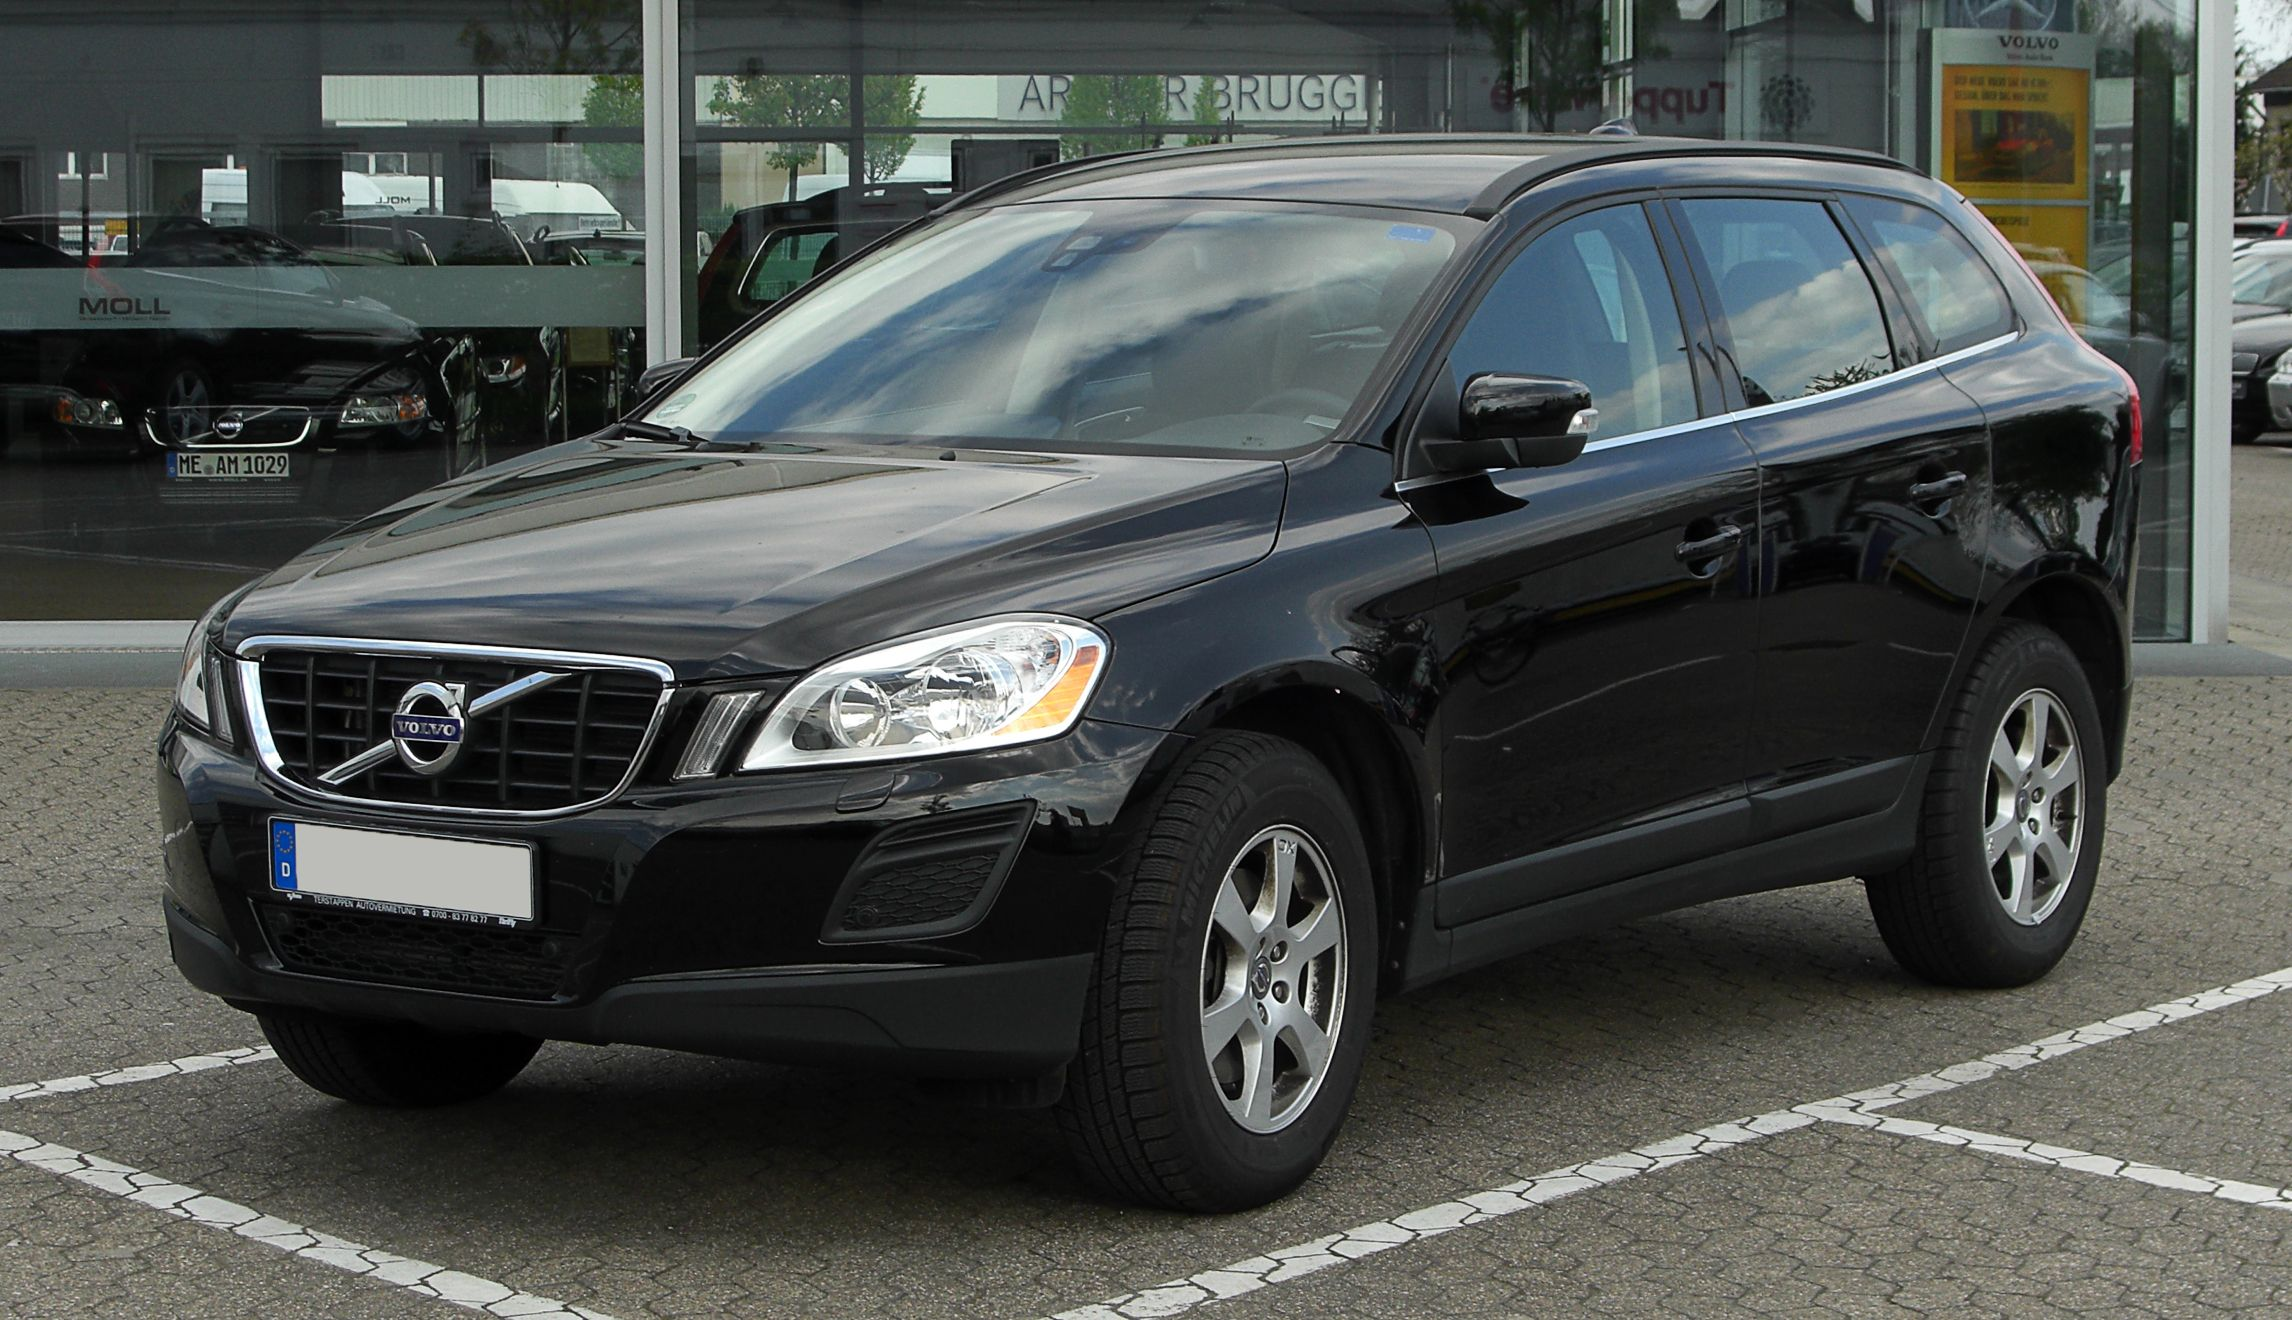 Pin by Let's Do It Manual on SUV/Truck Manuals | Volvo xc60